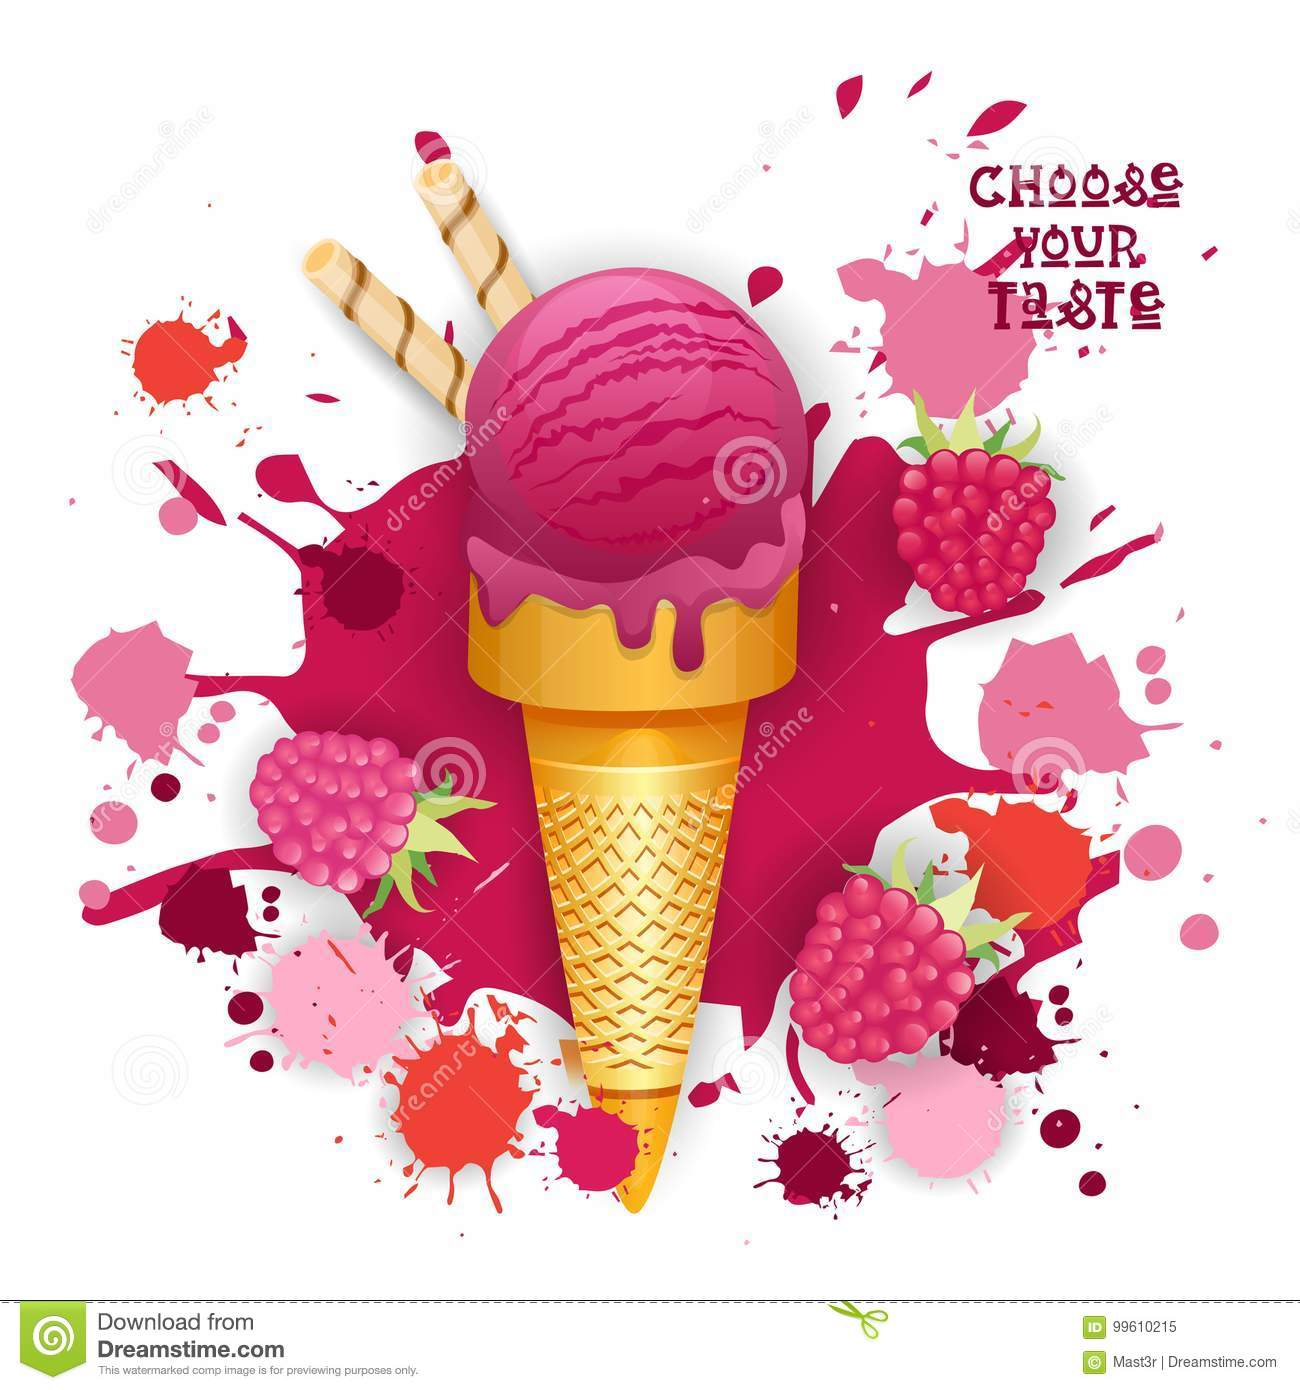 Ice Cream Raspberry Cone Colorful Dessert Icon Choose Your Taste Cafe Poster